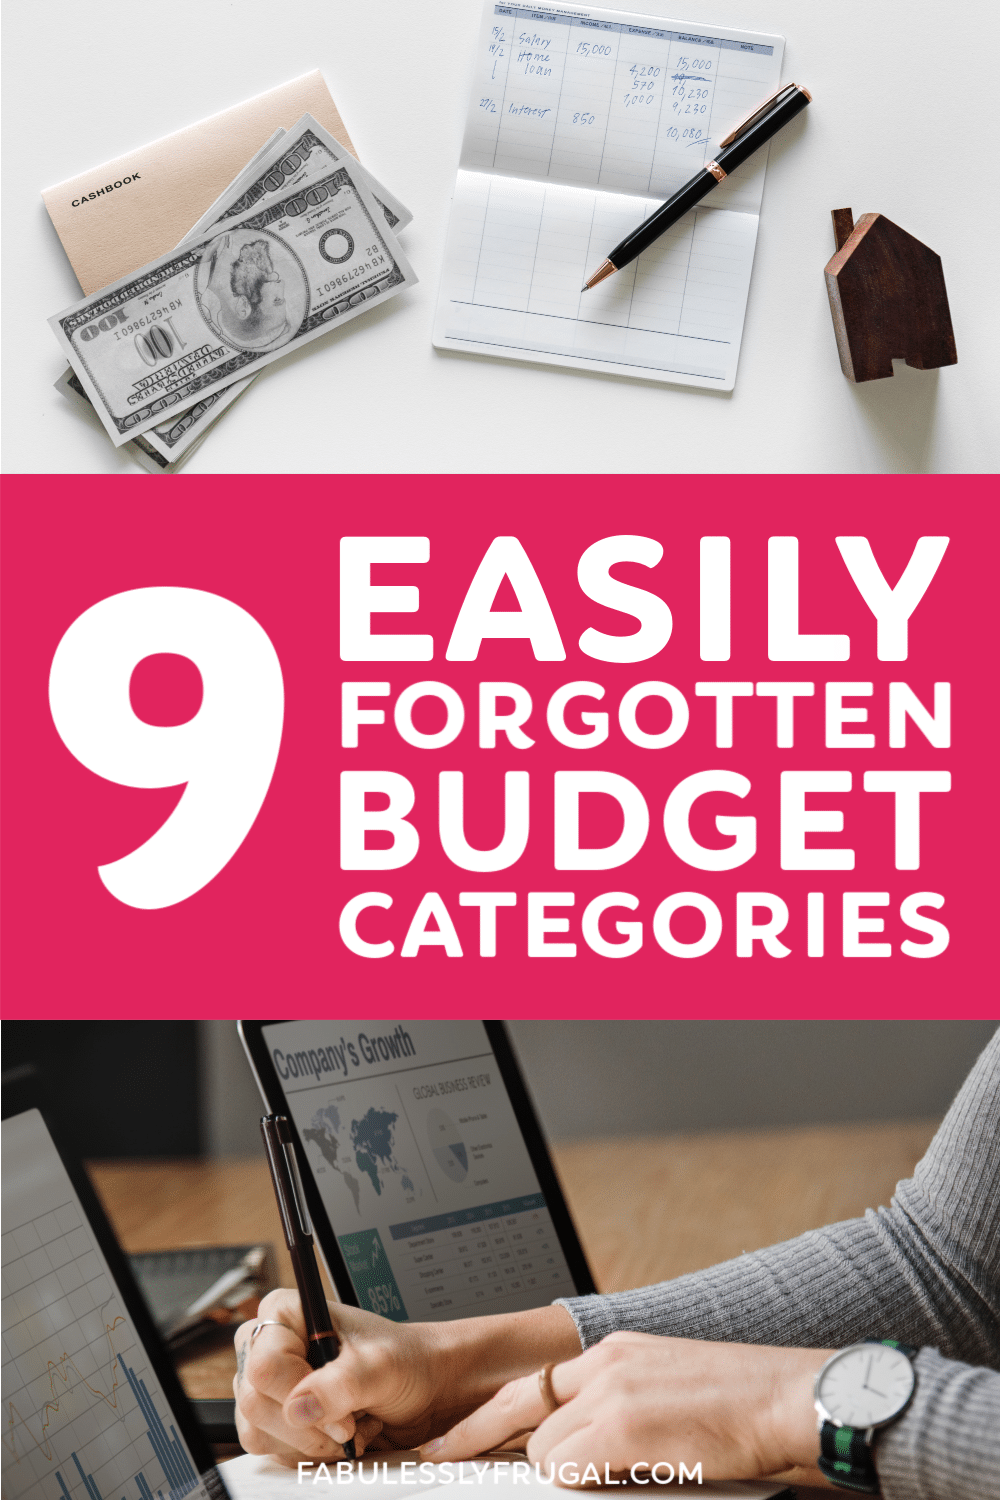 Commonly forgotten budget categories